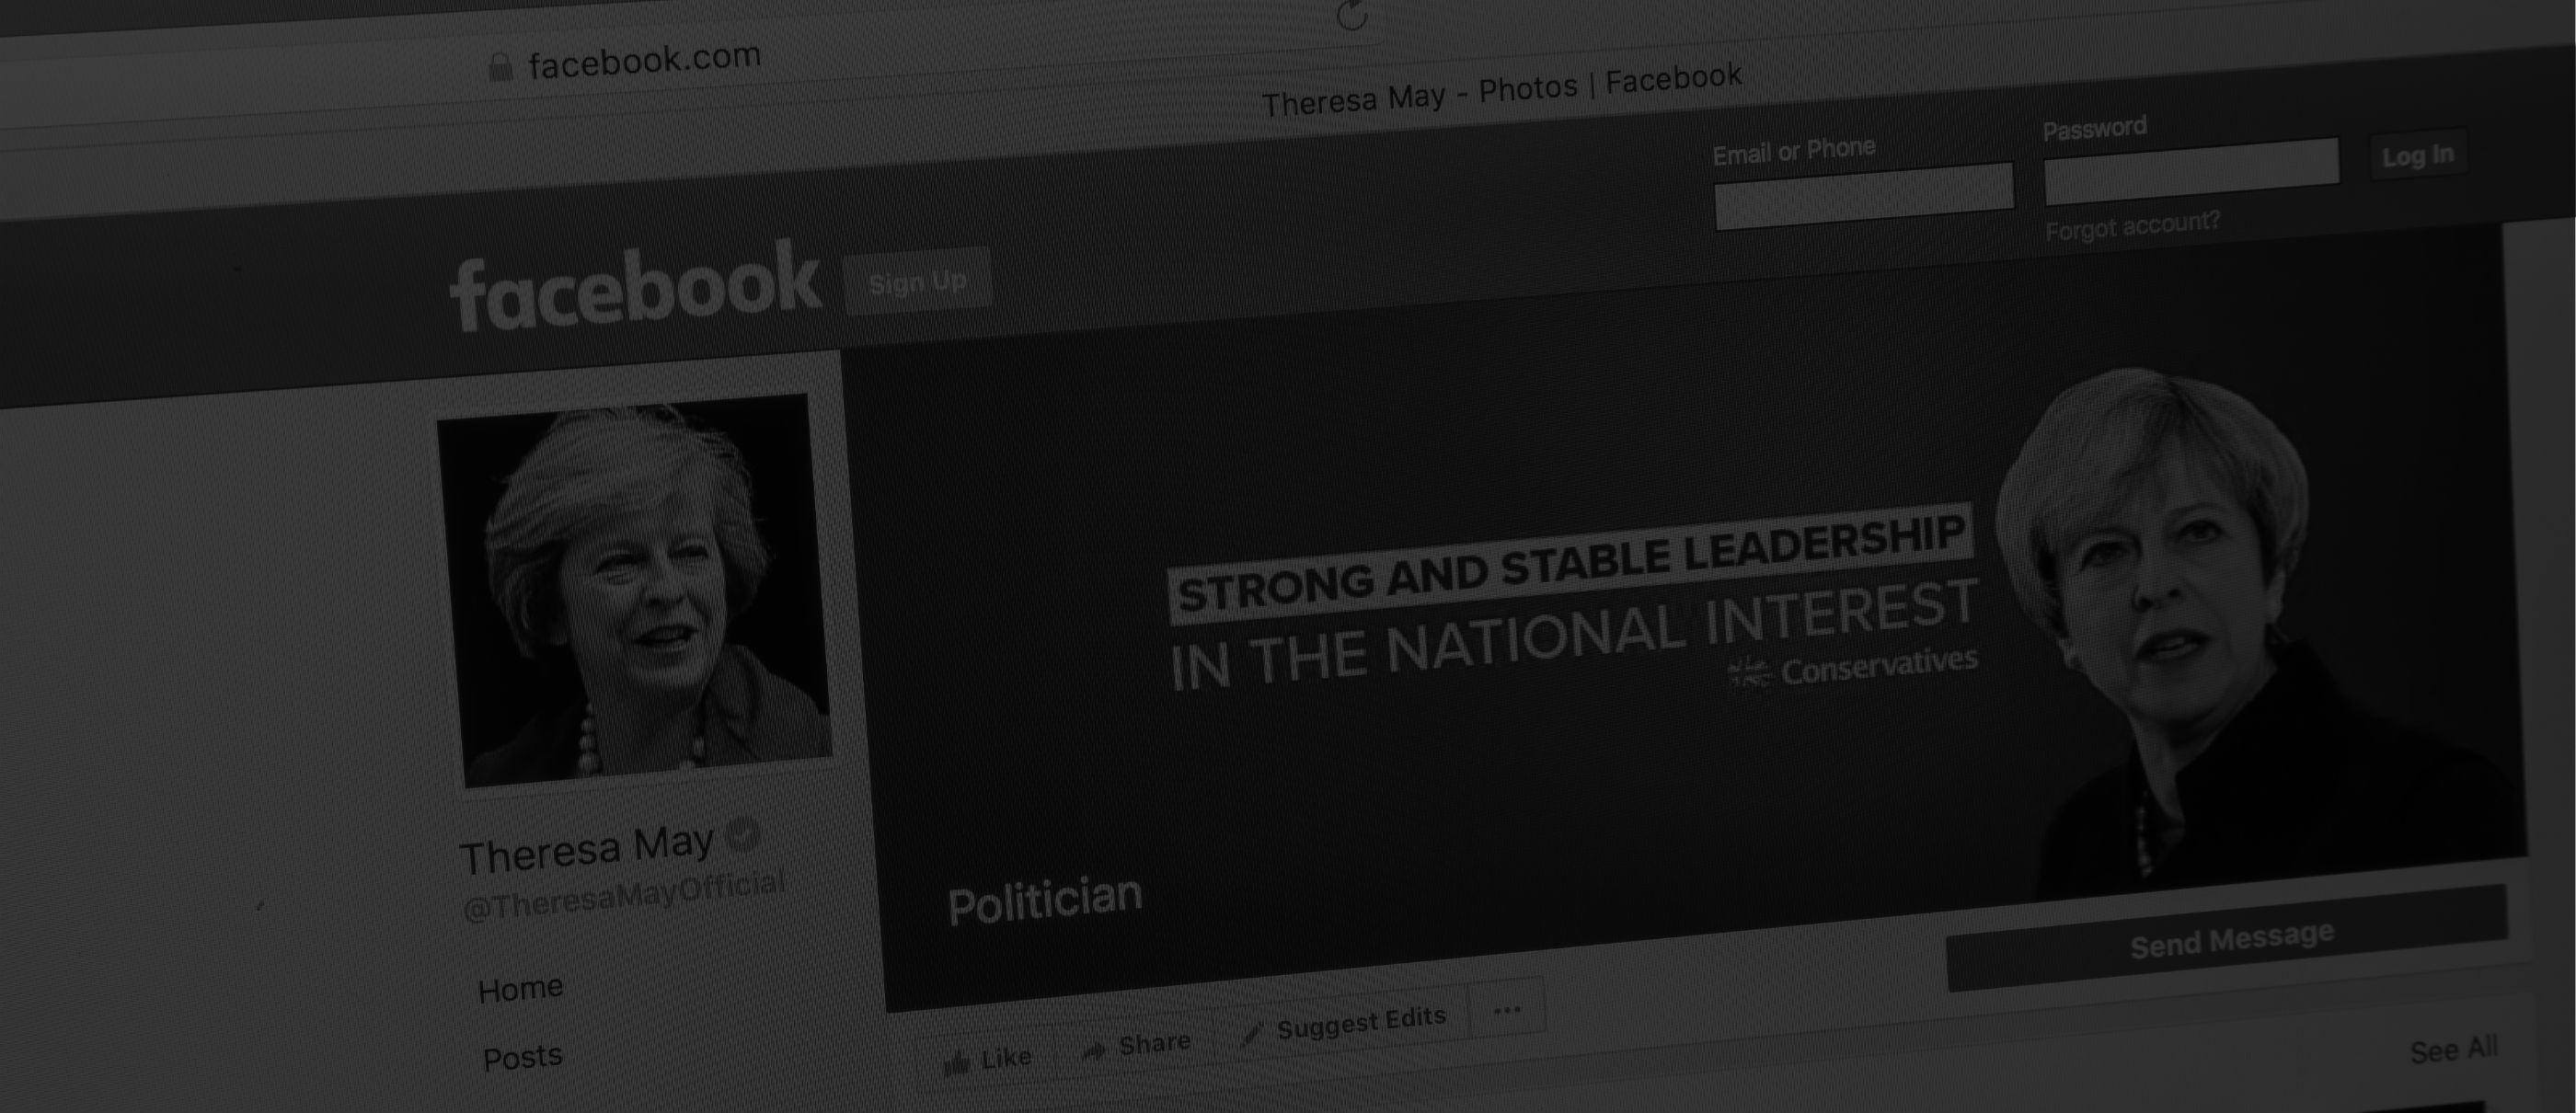 Kaleida: Restoring Transparency Among Facebook Ads: New Tools Announced for Political Campaigns Banner